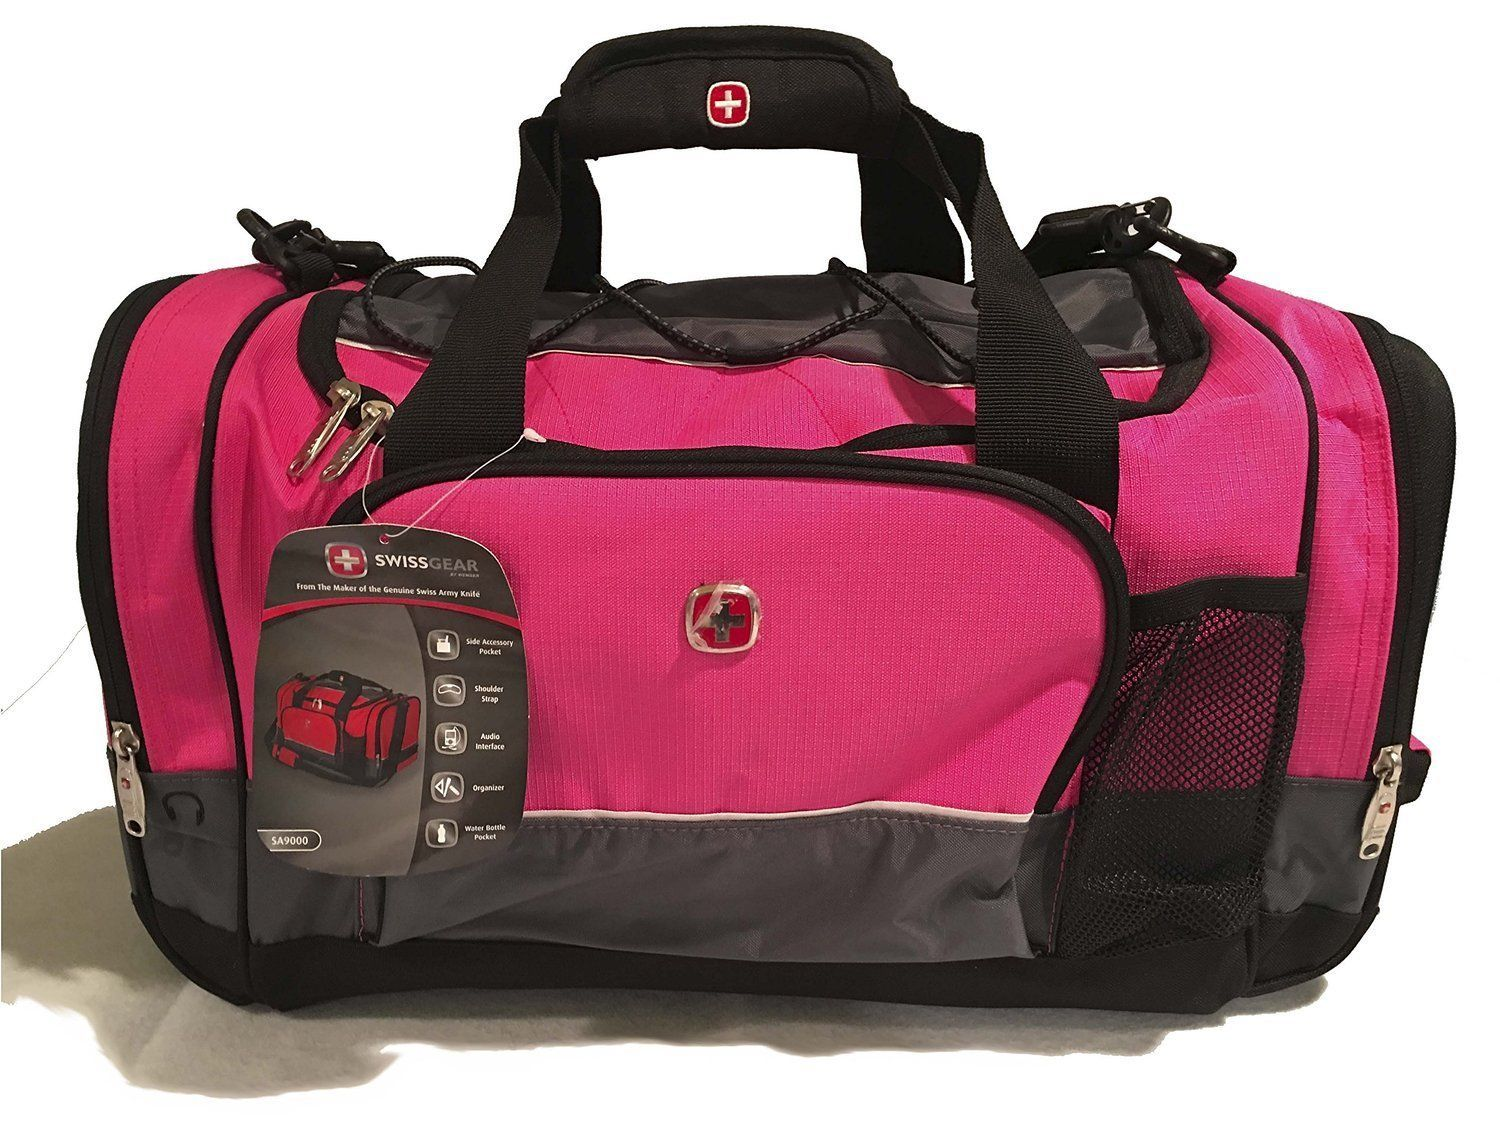 Swissgear Duffel Bag Pink Sa9000 Large And 39 Similar Items S L1600